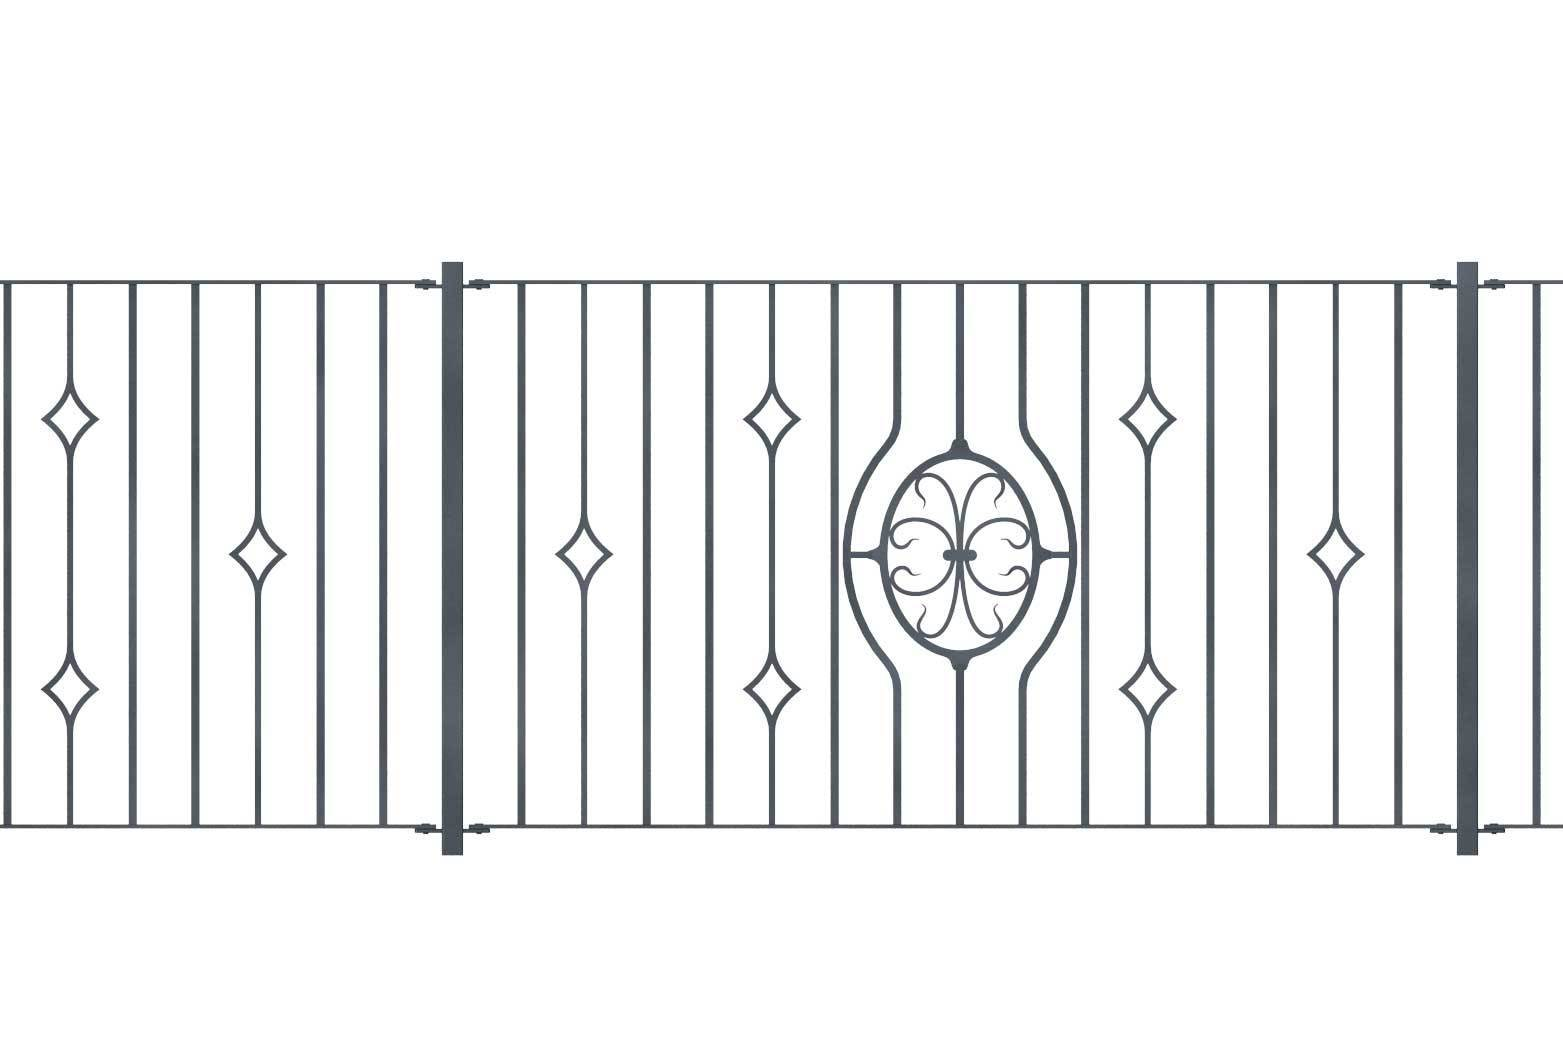 Railings - Newquay - Style 21D - Wrought Iron Railing With Double Astral Pattern And Martel Panel